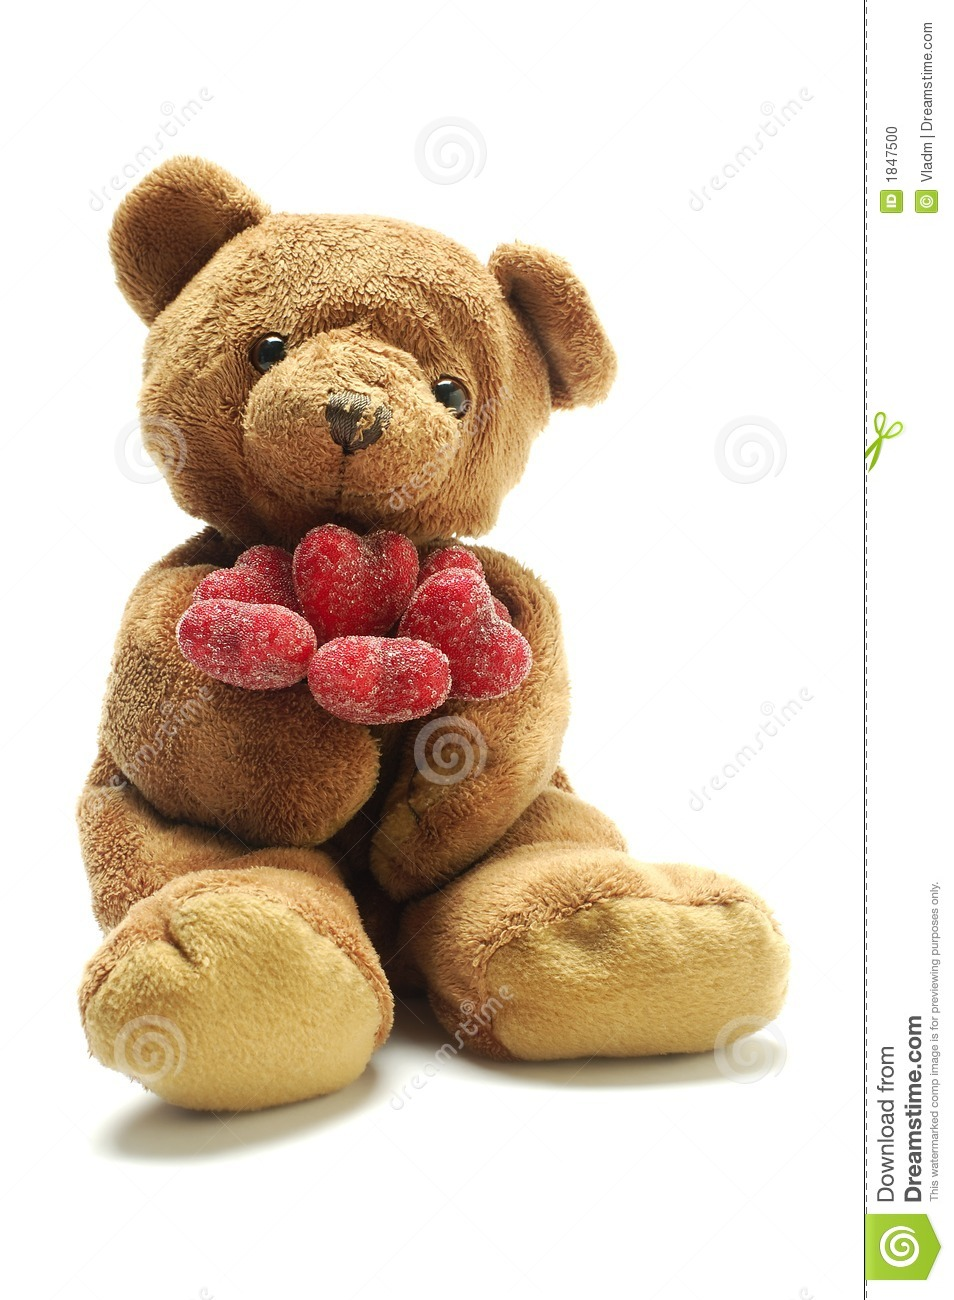 teddy bear in love stock photo image 1847500. Black Bedroom Furniture Sets. Home Design Ideas